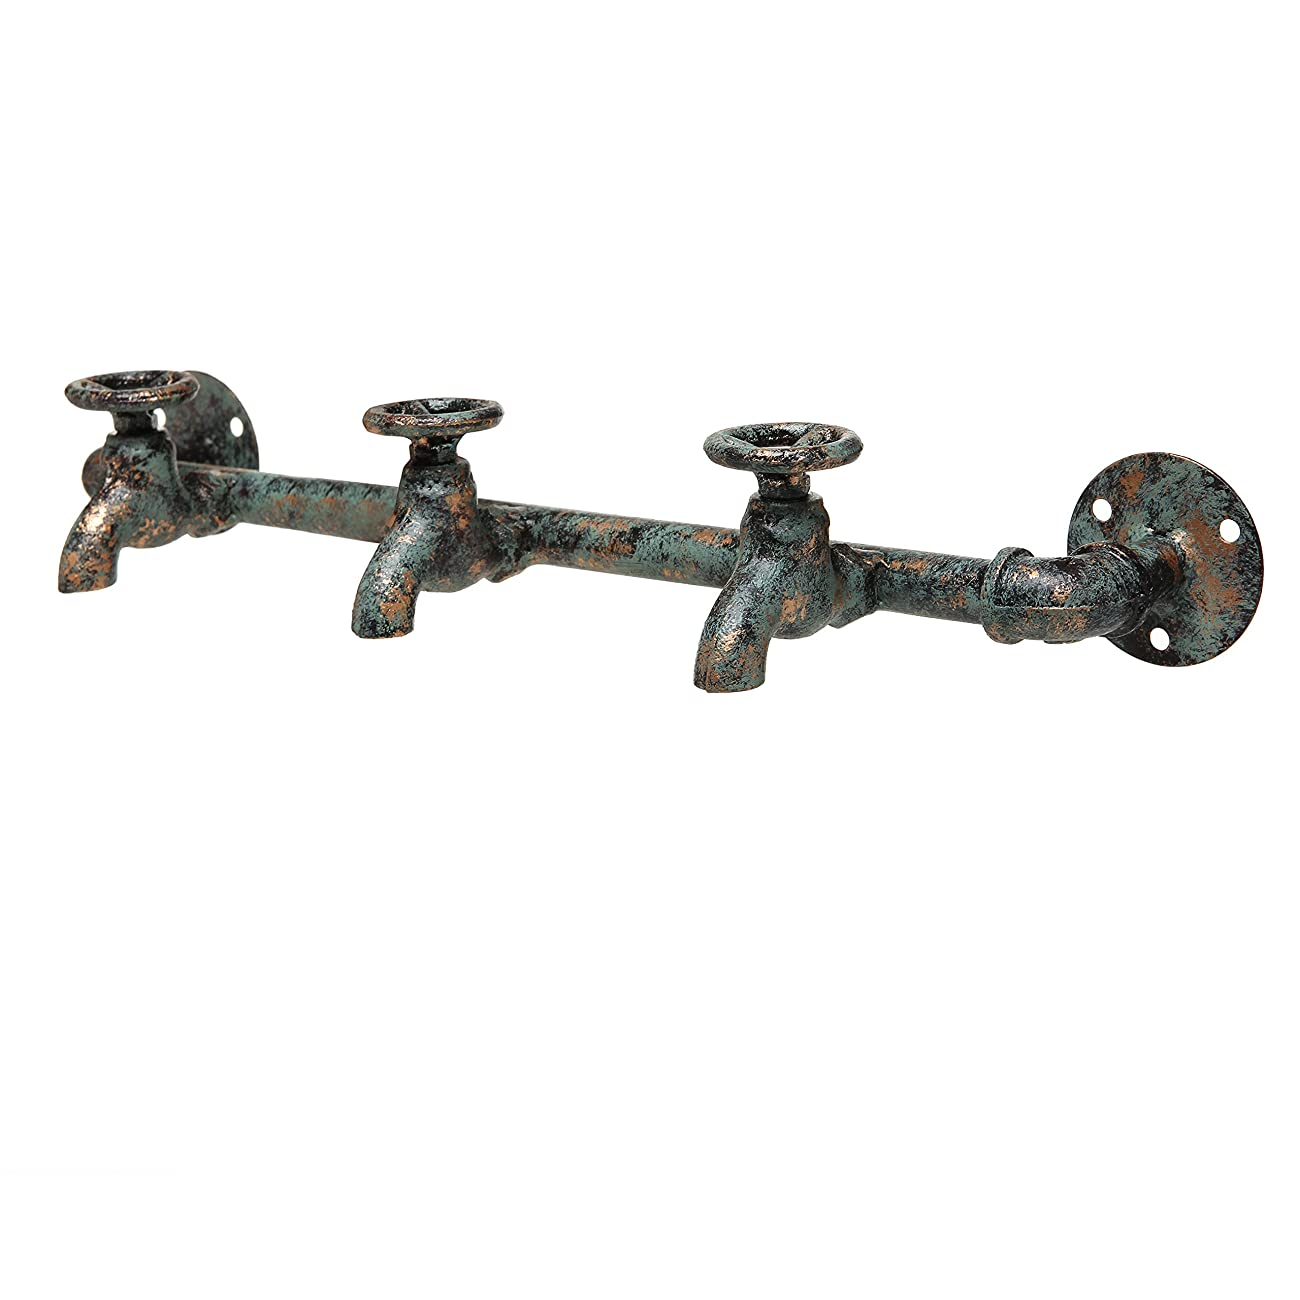 Rustic Industrial Faucet & Pipe Wall Mounted Iron Coat Hooks Garment Hanger / Towel Rack Bar - Turquoise 0